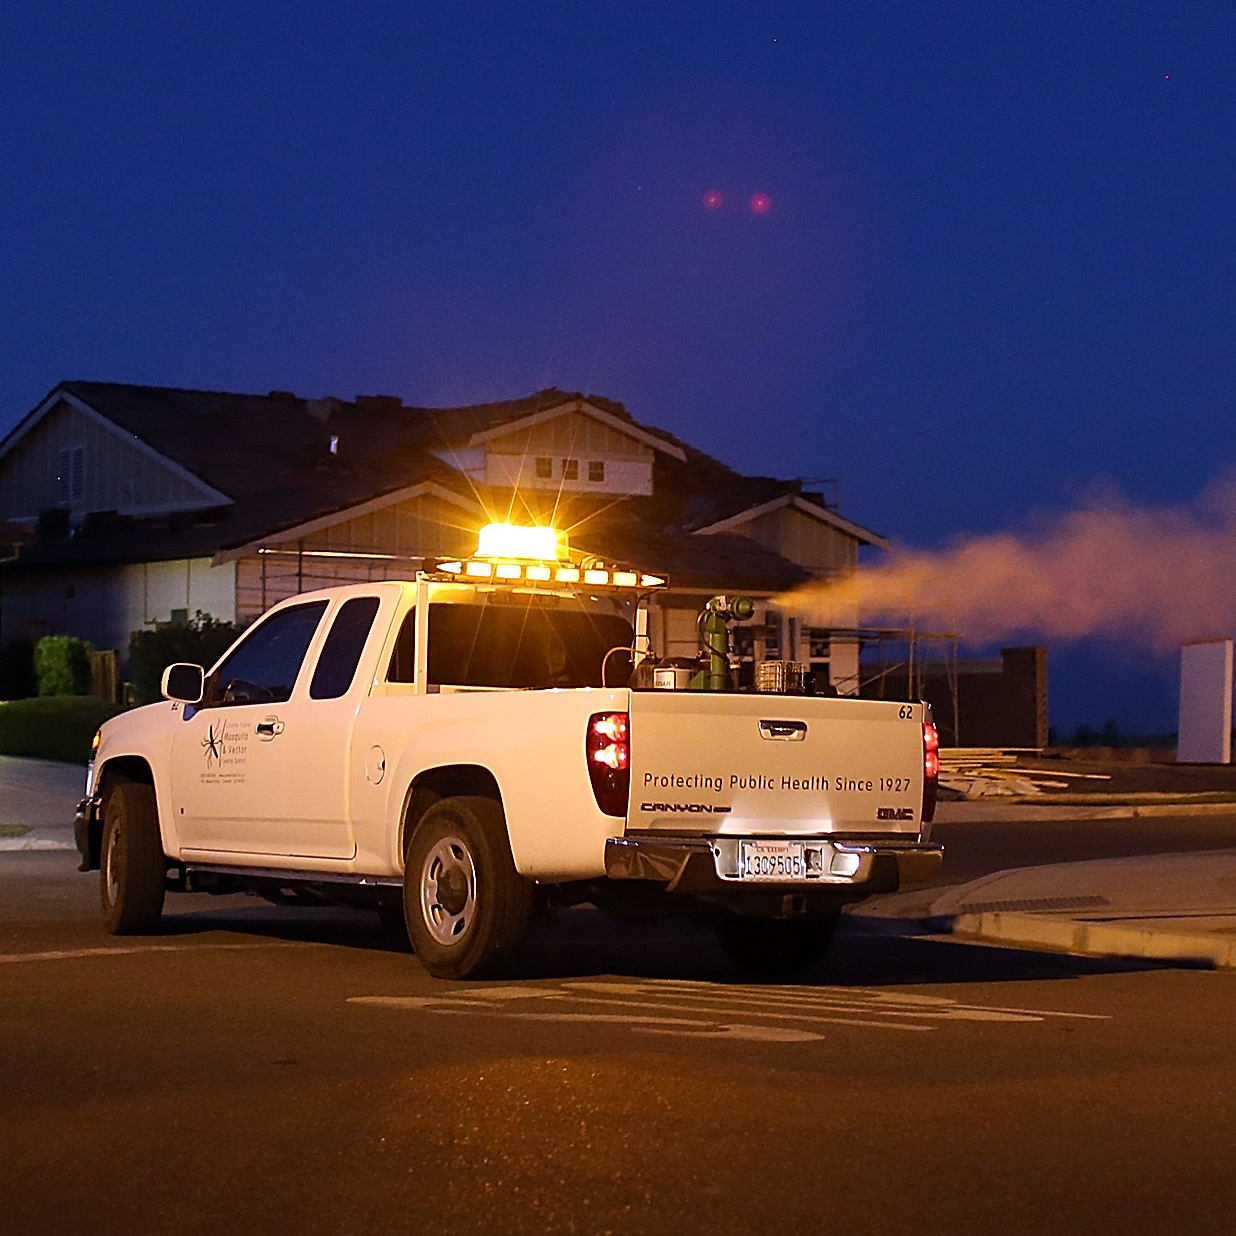 Technicians with the Contra Costa County Mosquito and Vector Control District drive a truck through a Brentwood, Calif., neighborhood fogging insecticide to curb mosquitoes that spread West Nile virus.